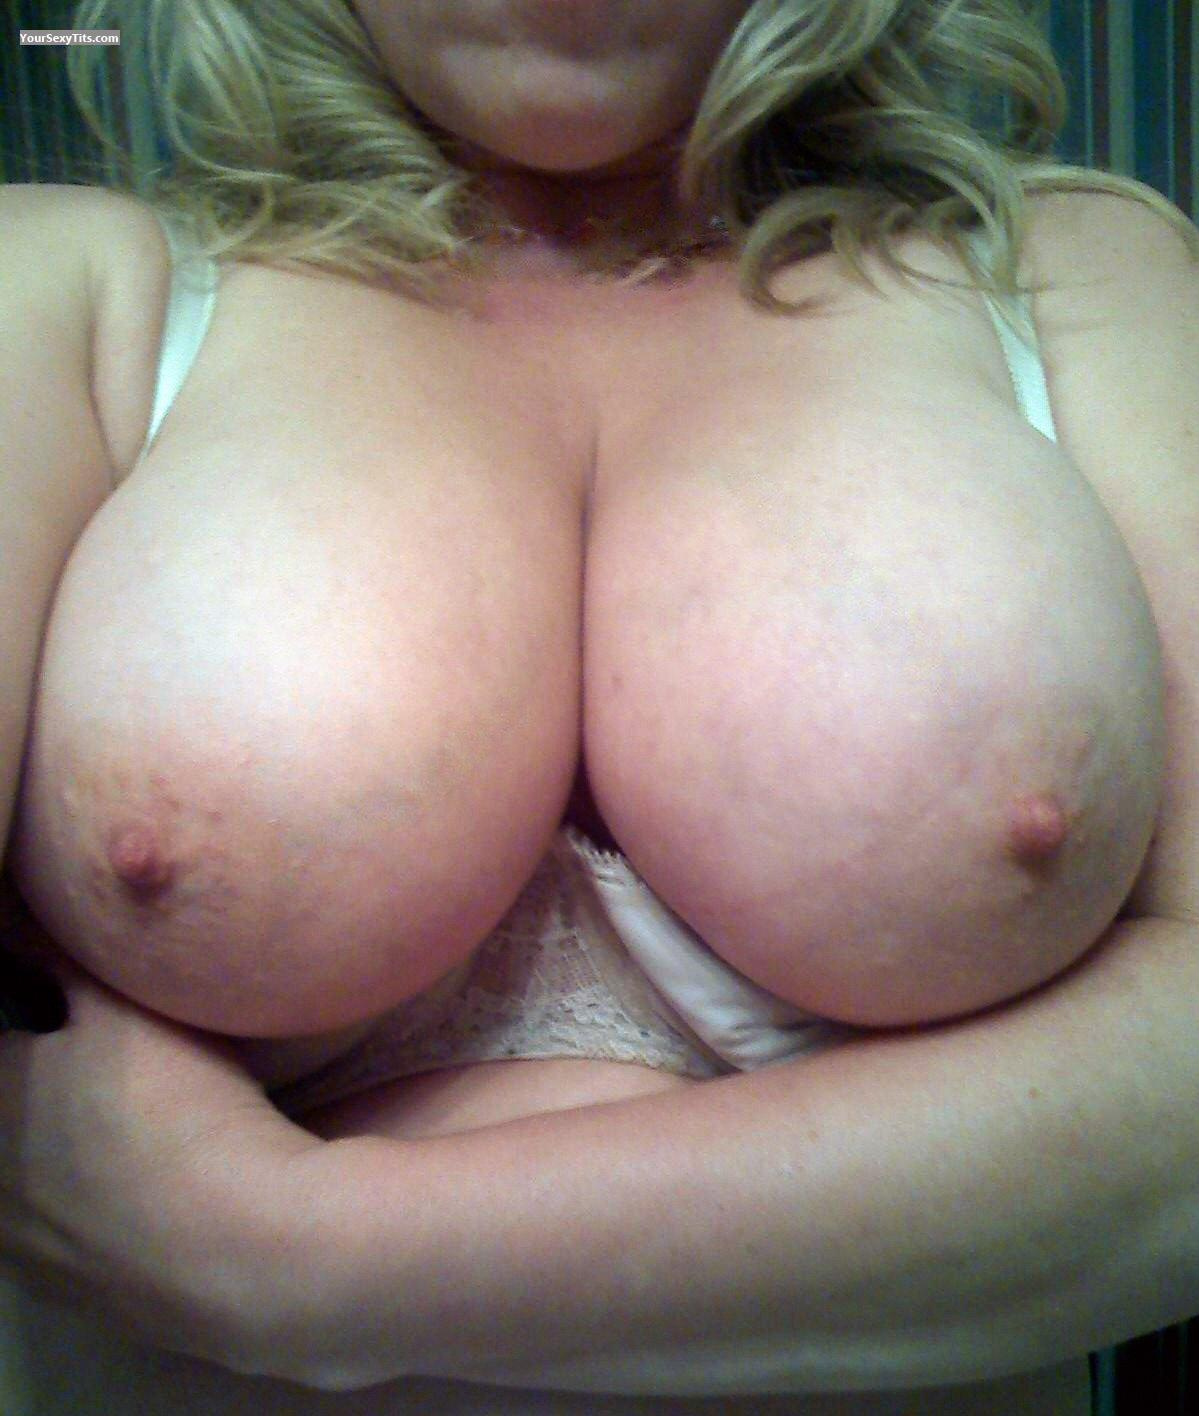 Tit Flash: My Big Tits (Selfie) - Angelina from United States